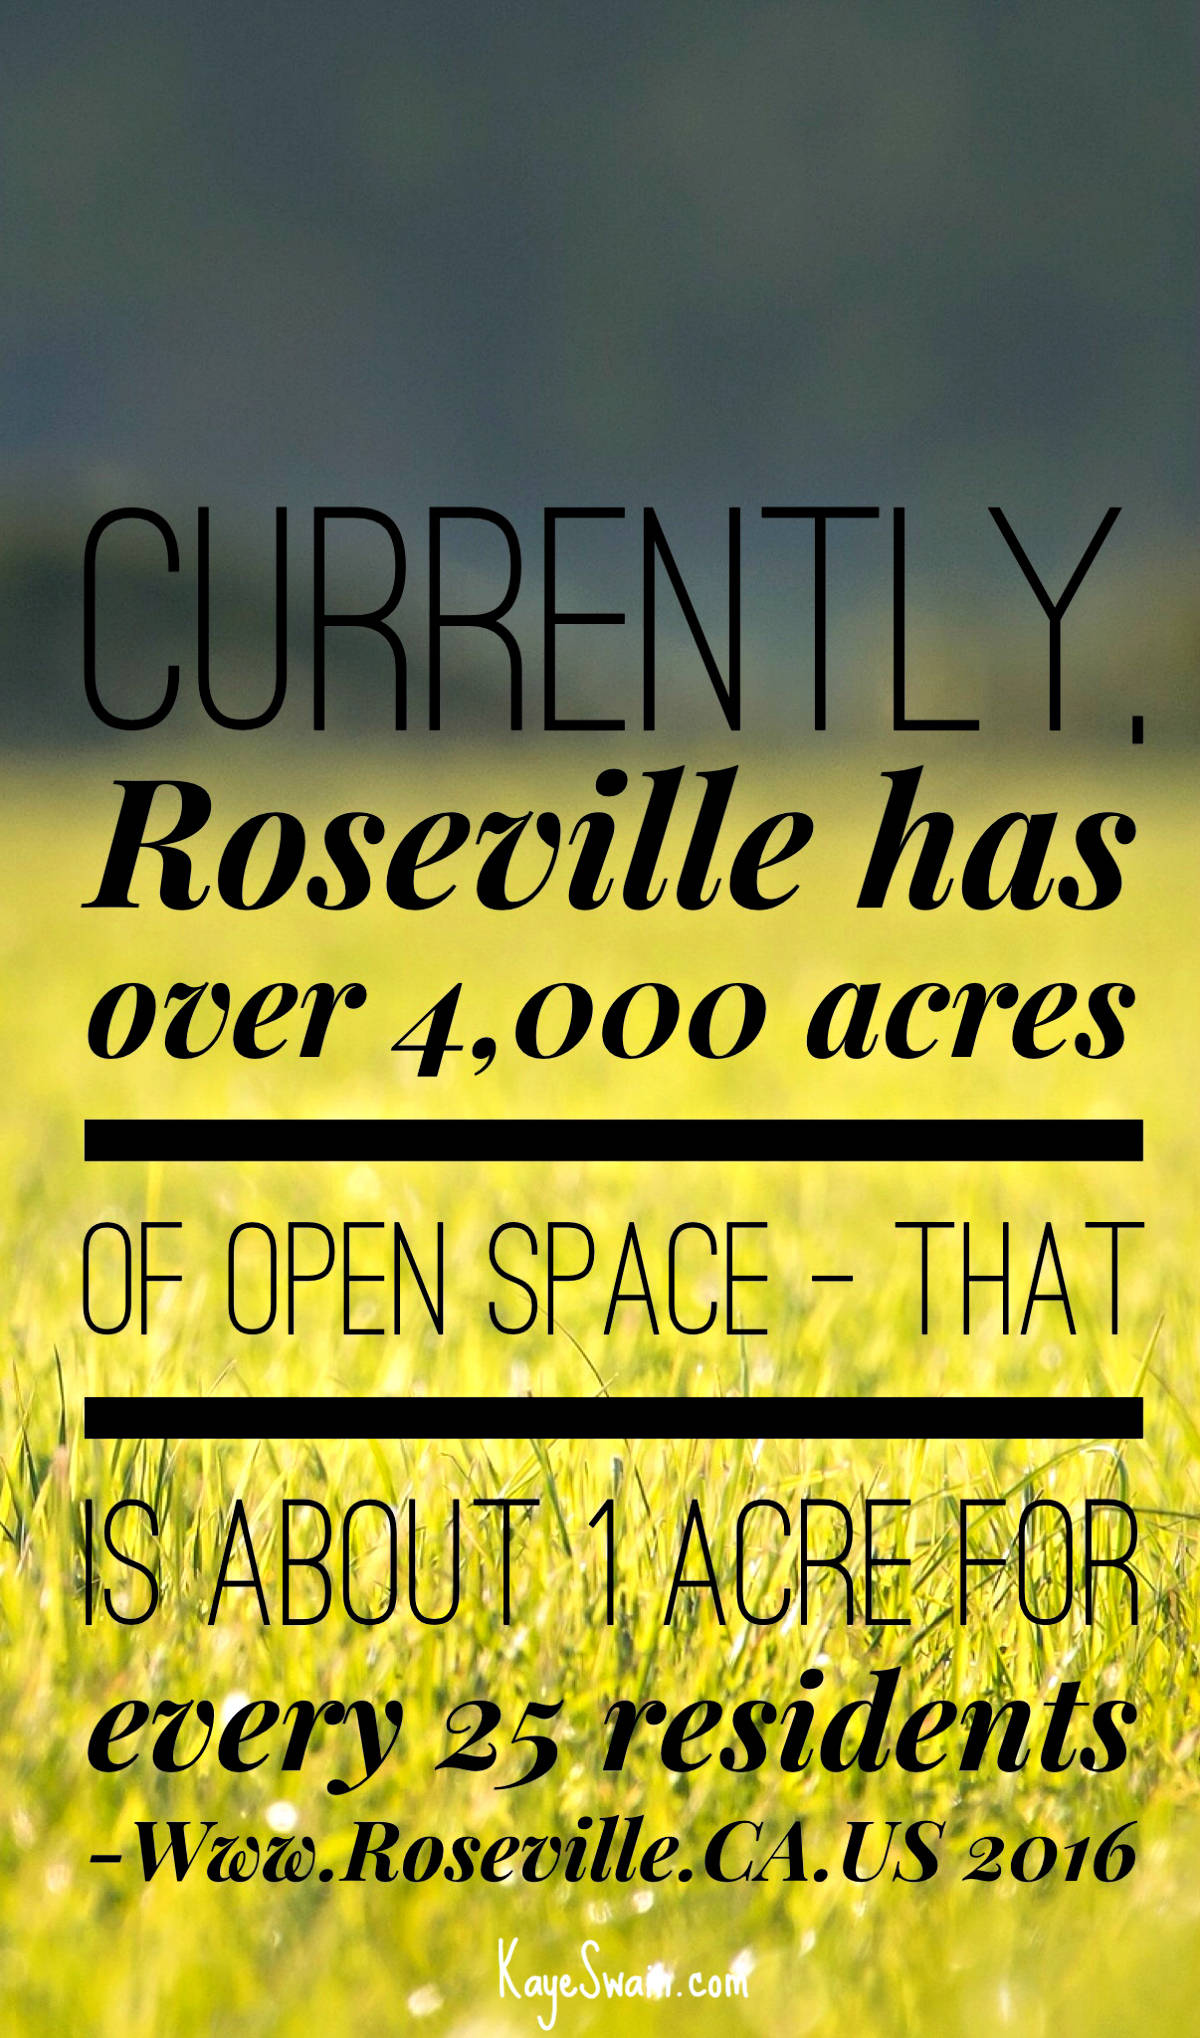 West Roseville CA 95747 real estate agent Kaye Swain shares city quote open space preserves